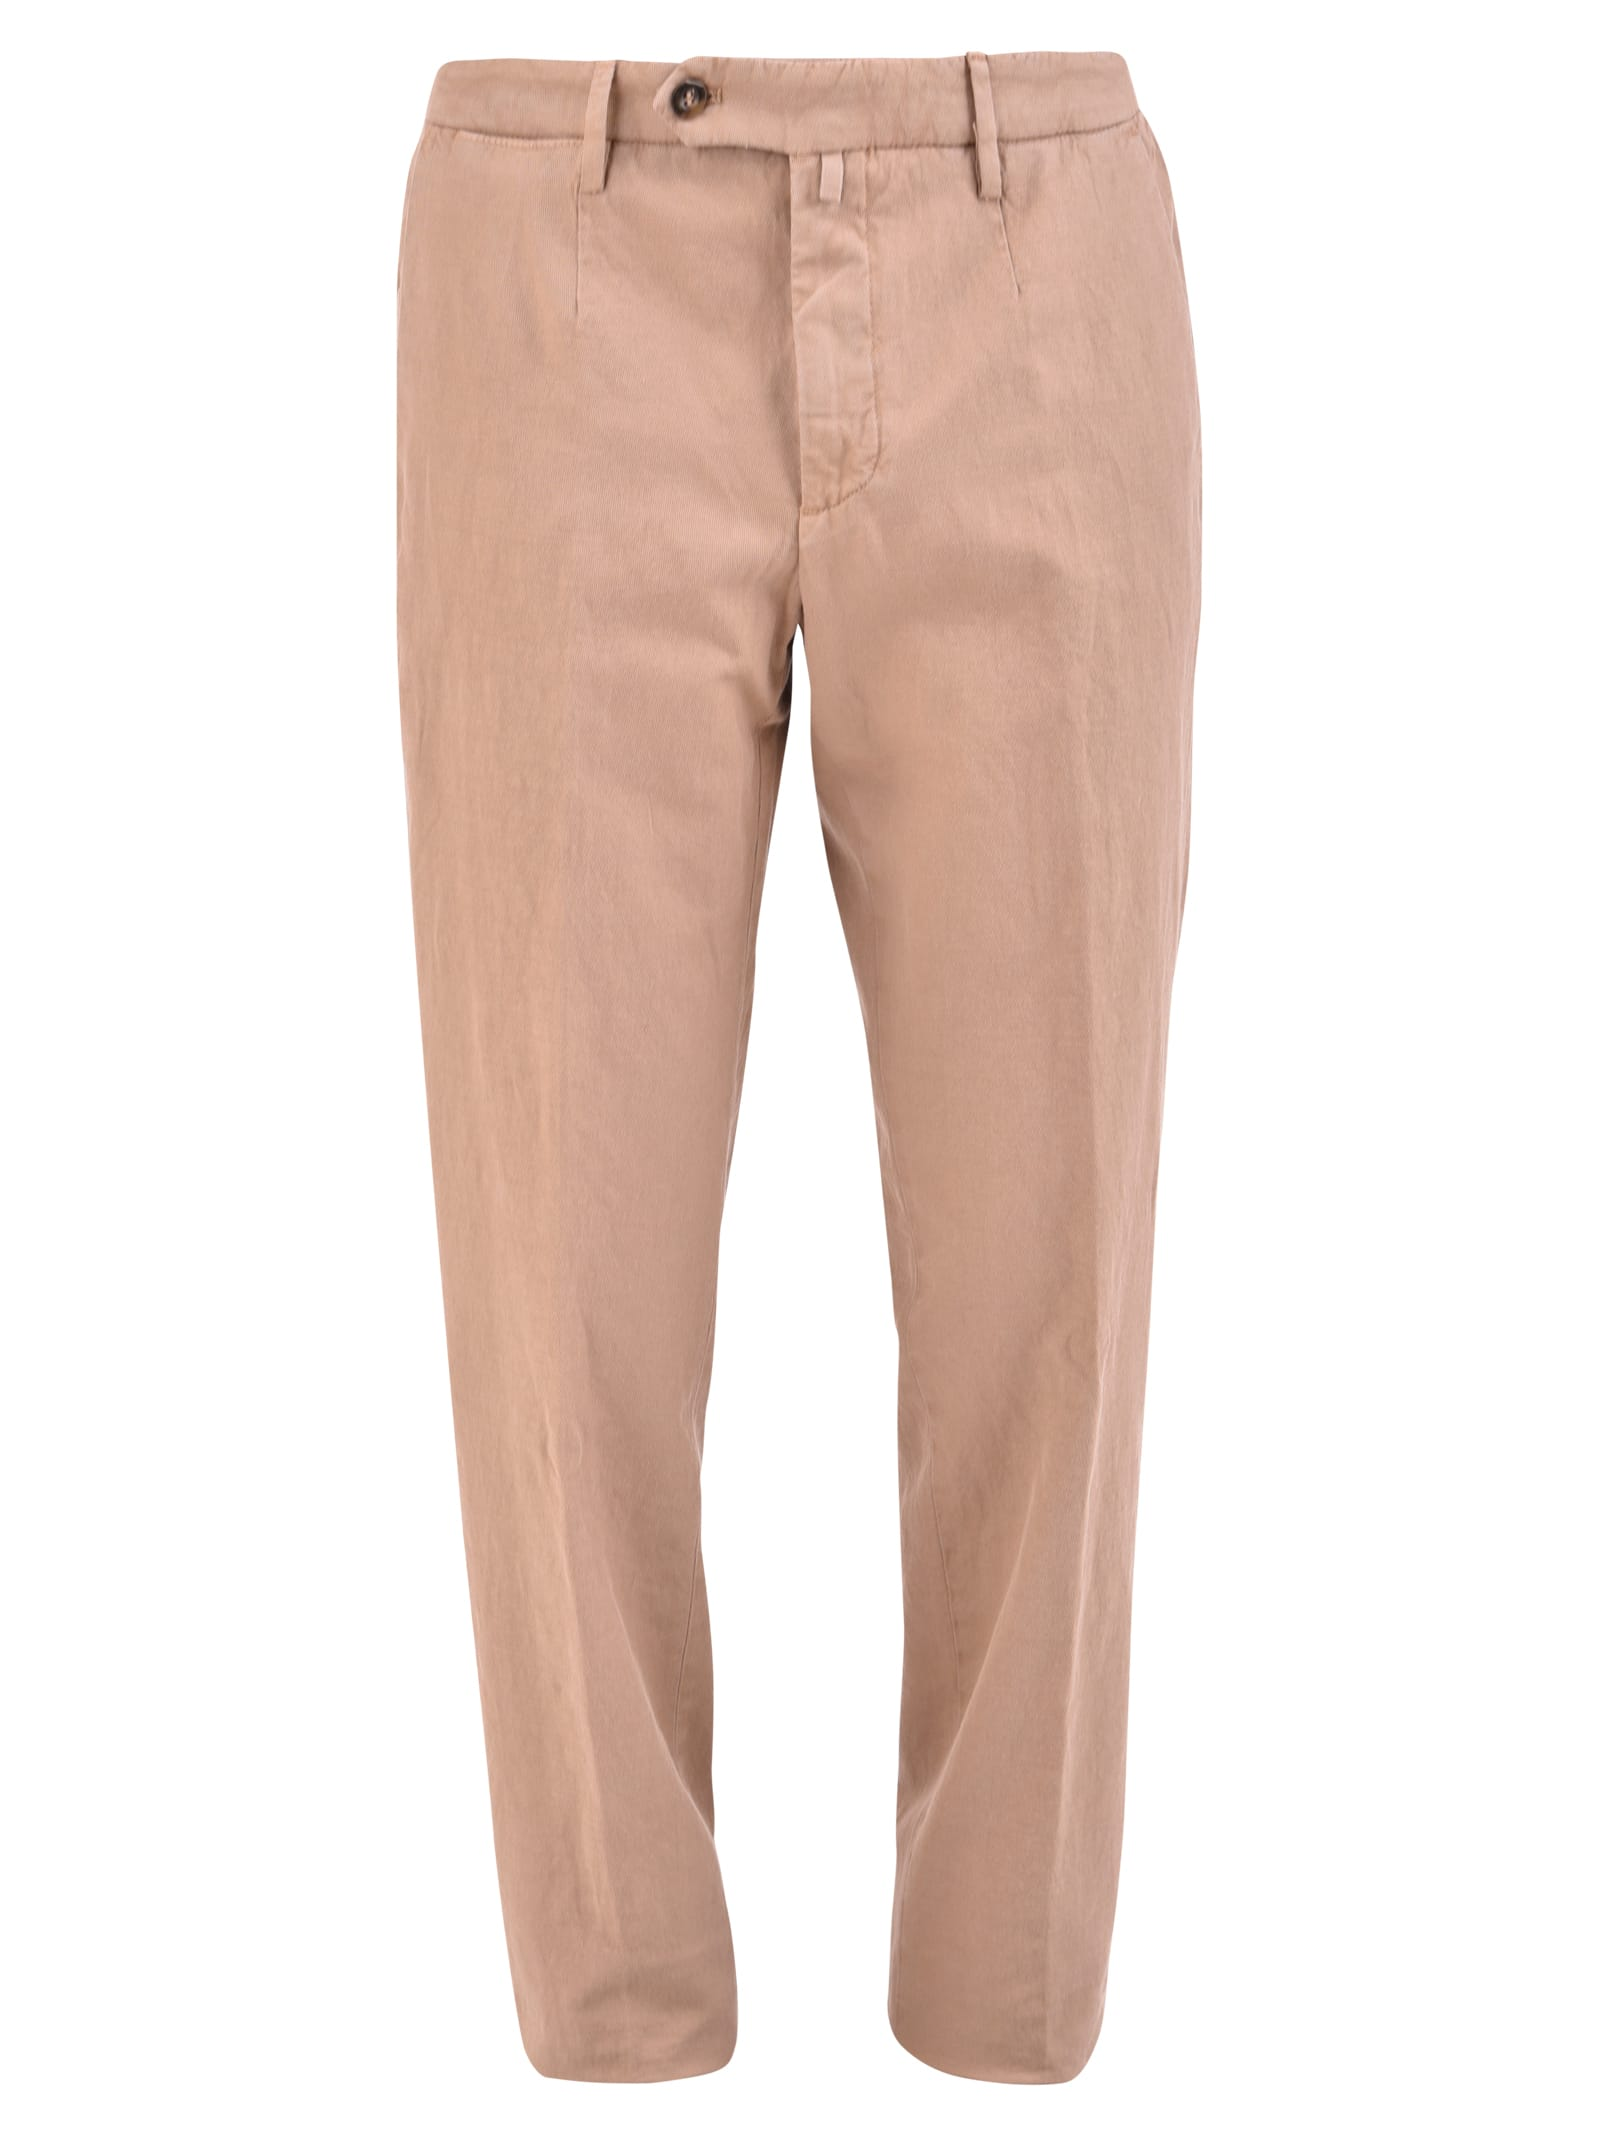 1949 Brown Trousers